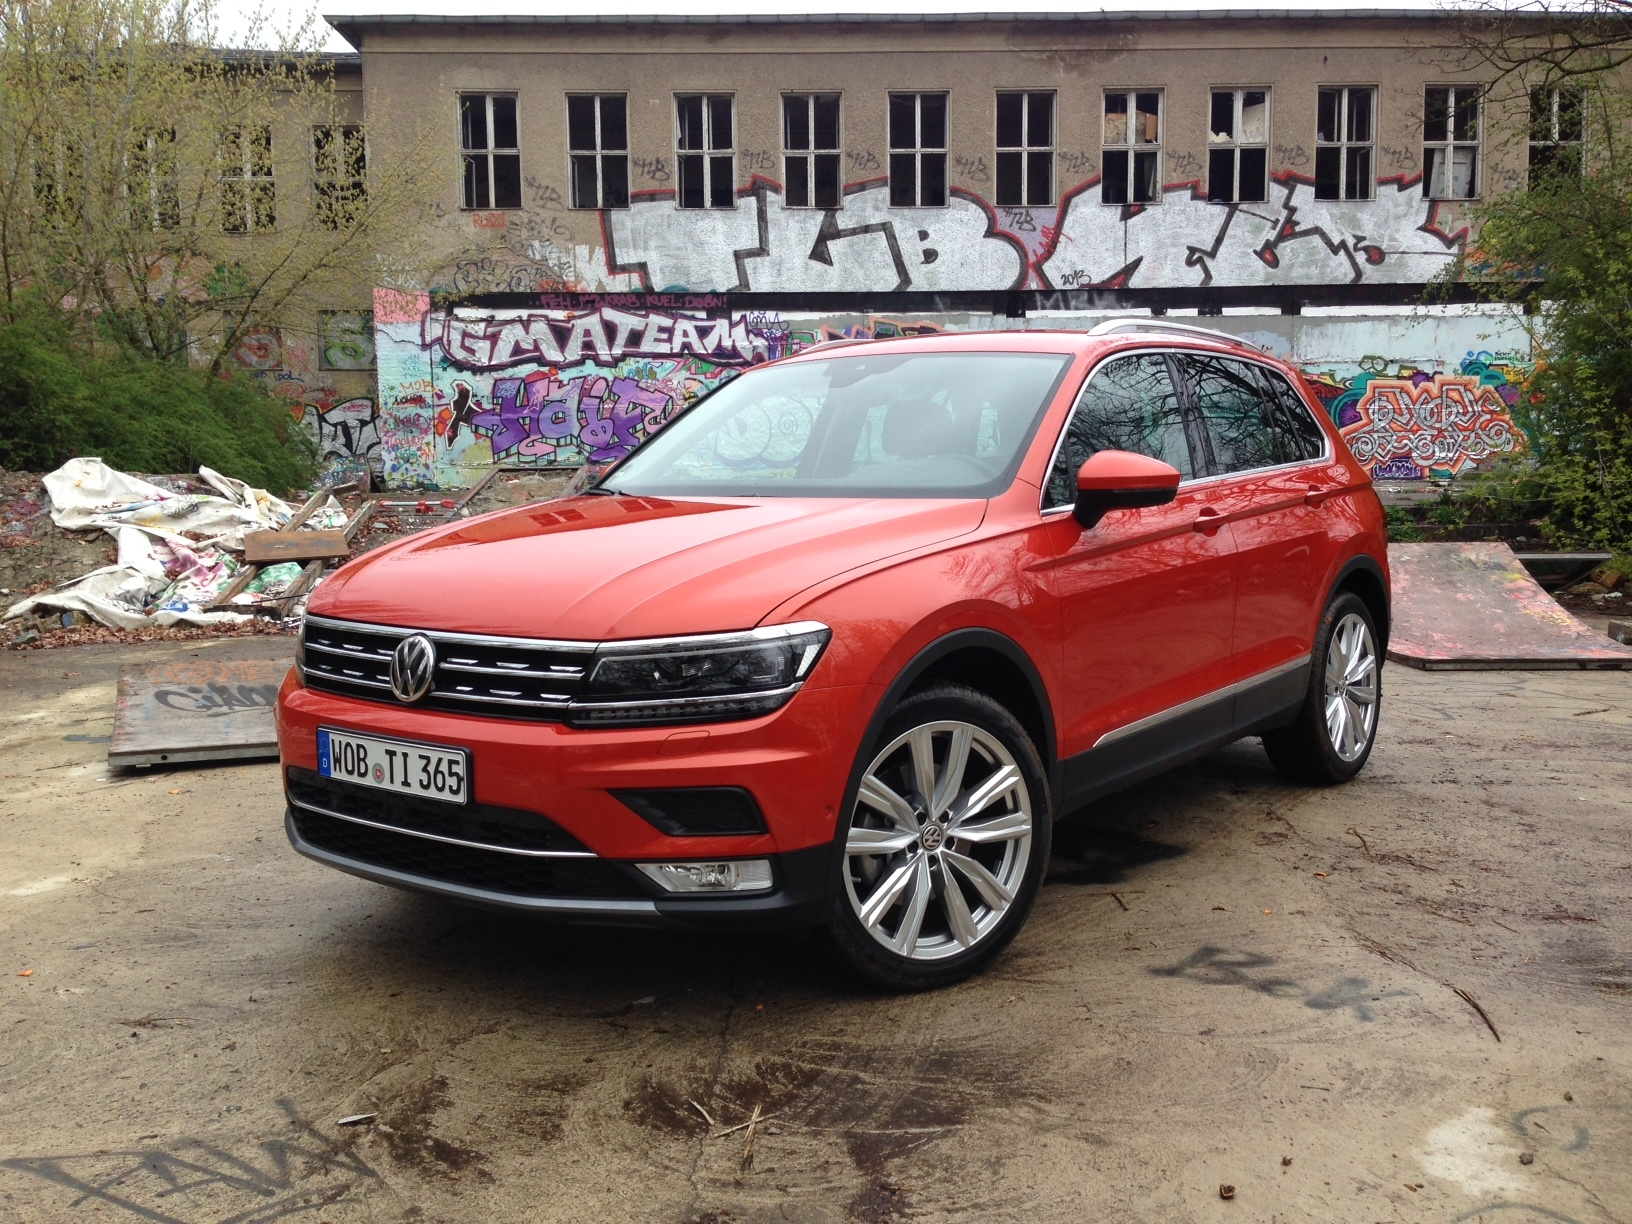 premi re vid o volkswagen tiguan 2 d couvrez les premi res images de l 39 essai en live. Black Bedroom Furniture Sets. Home Design Ideas